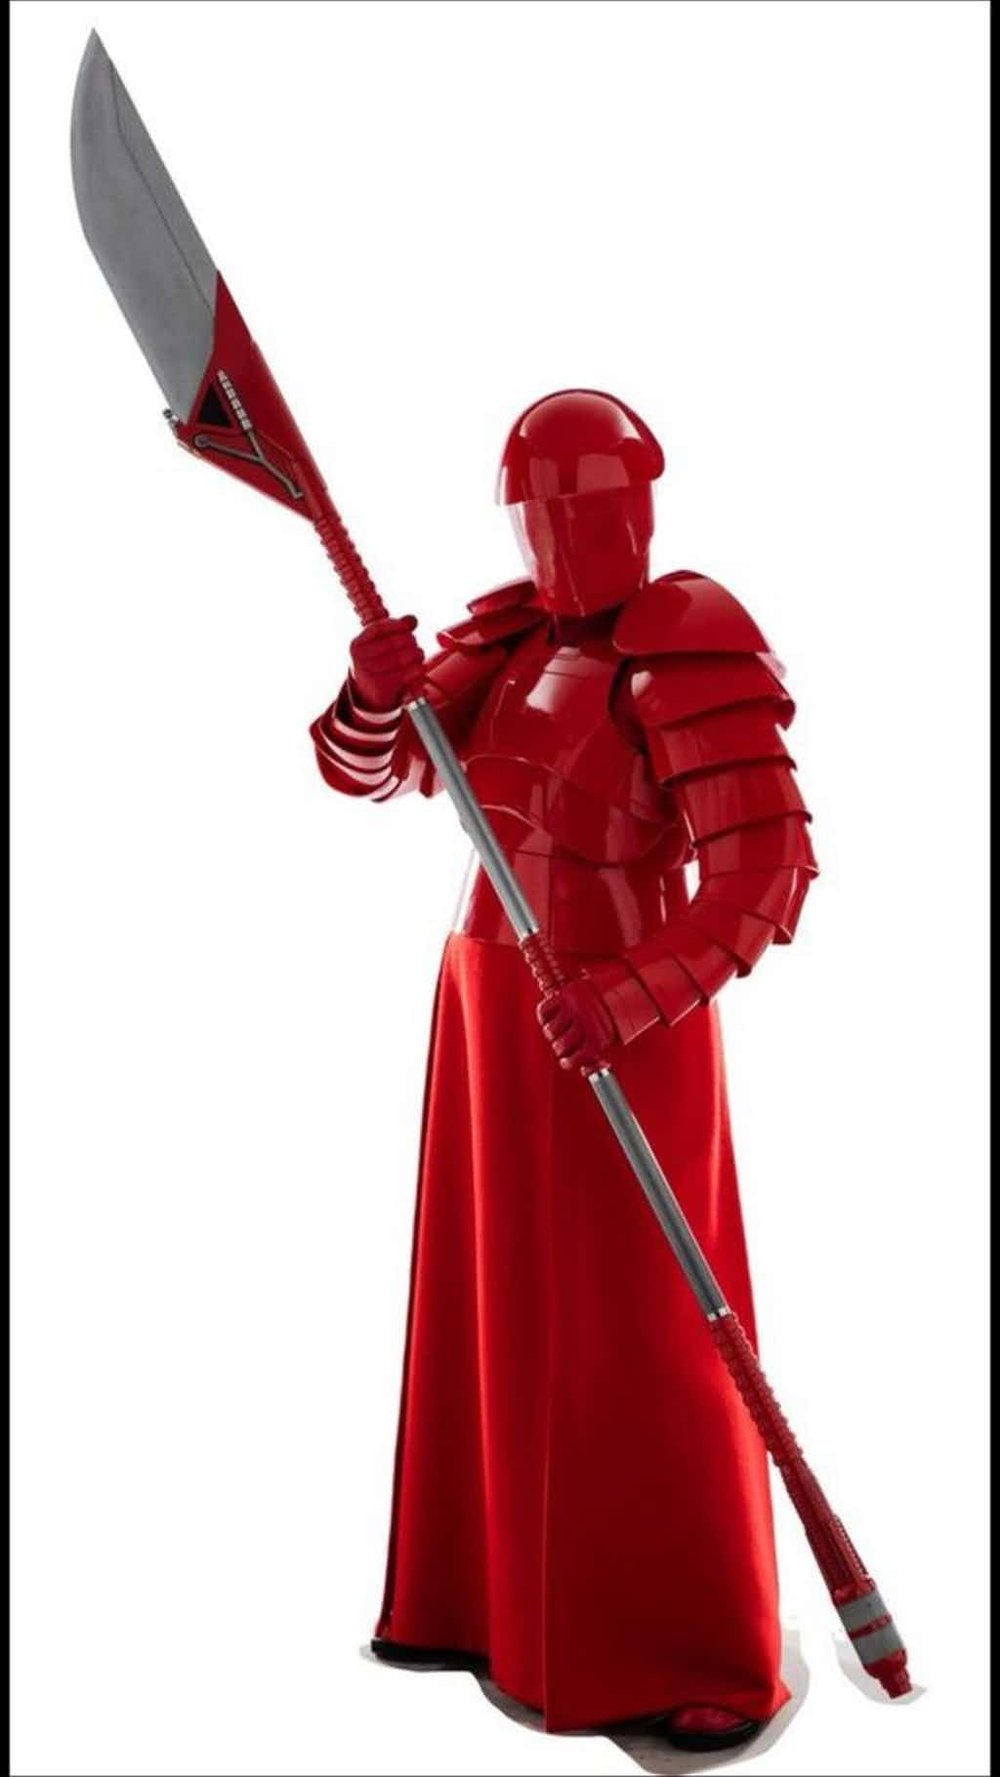 Star-Wars-The-Last-Jedi-Snokes-Royal-Praetorian-Red-Guard-Holding-Axe-Pike.jpg